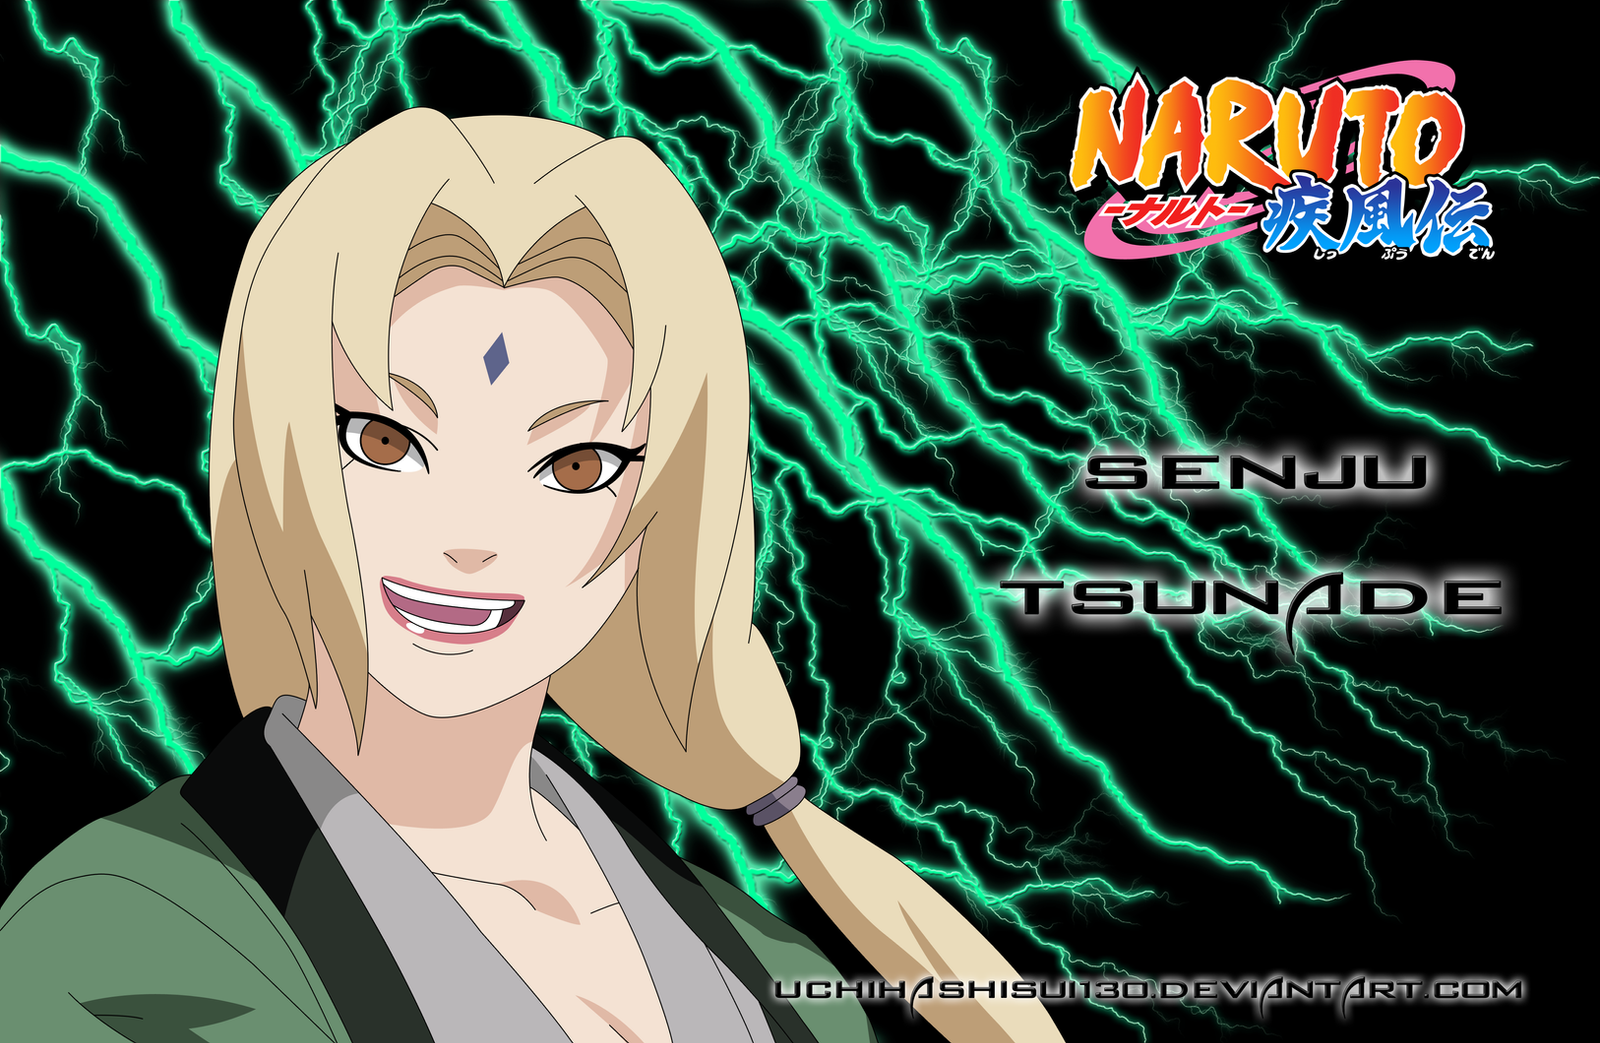 Senju Tsunade Wallpaper by ~uchihashisui130 on deviantART